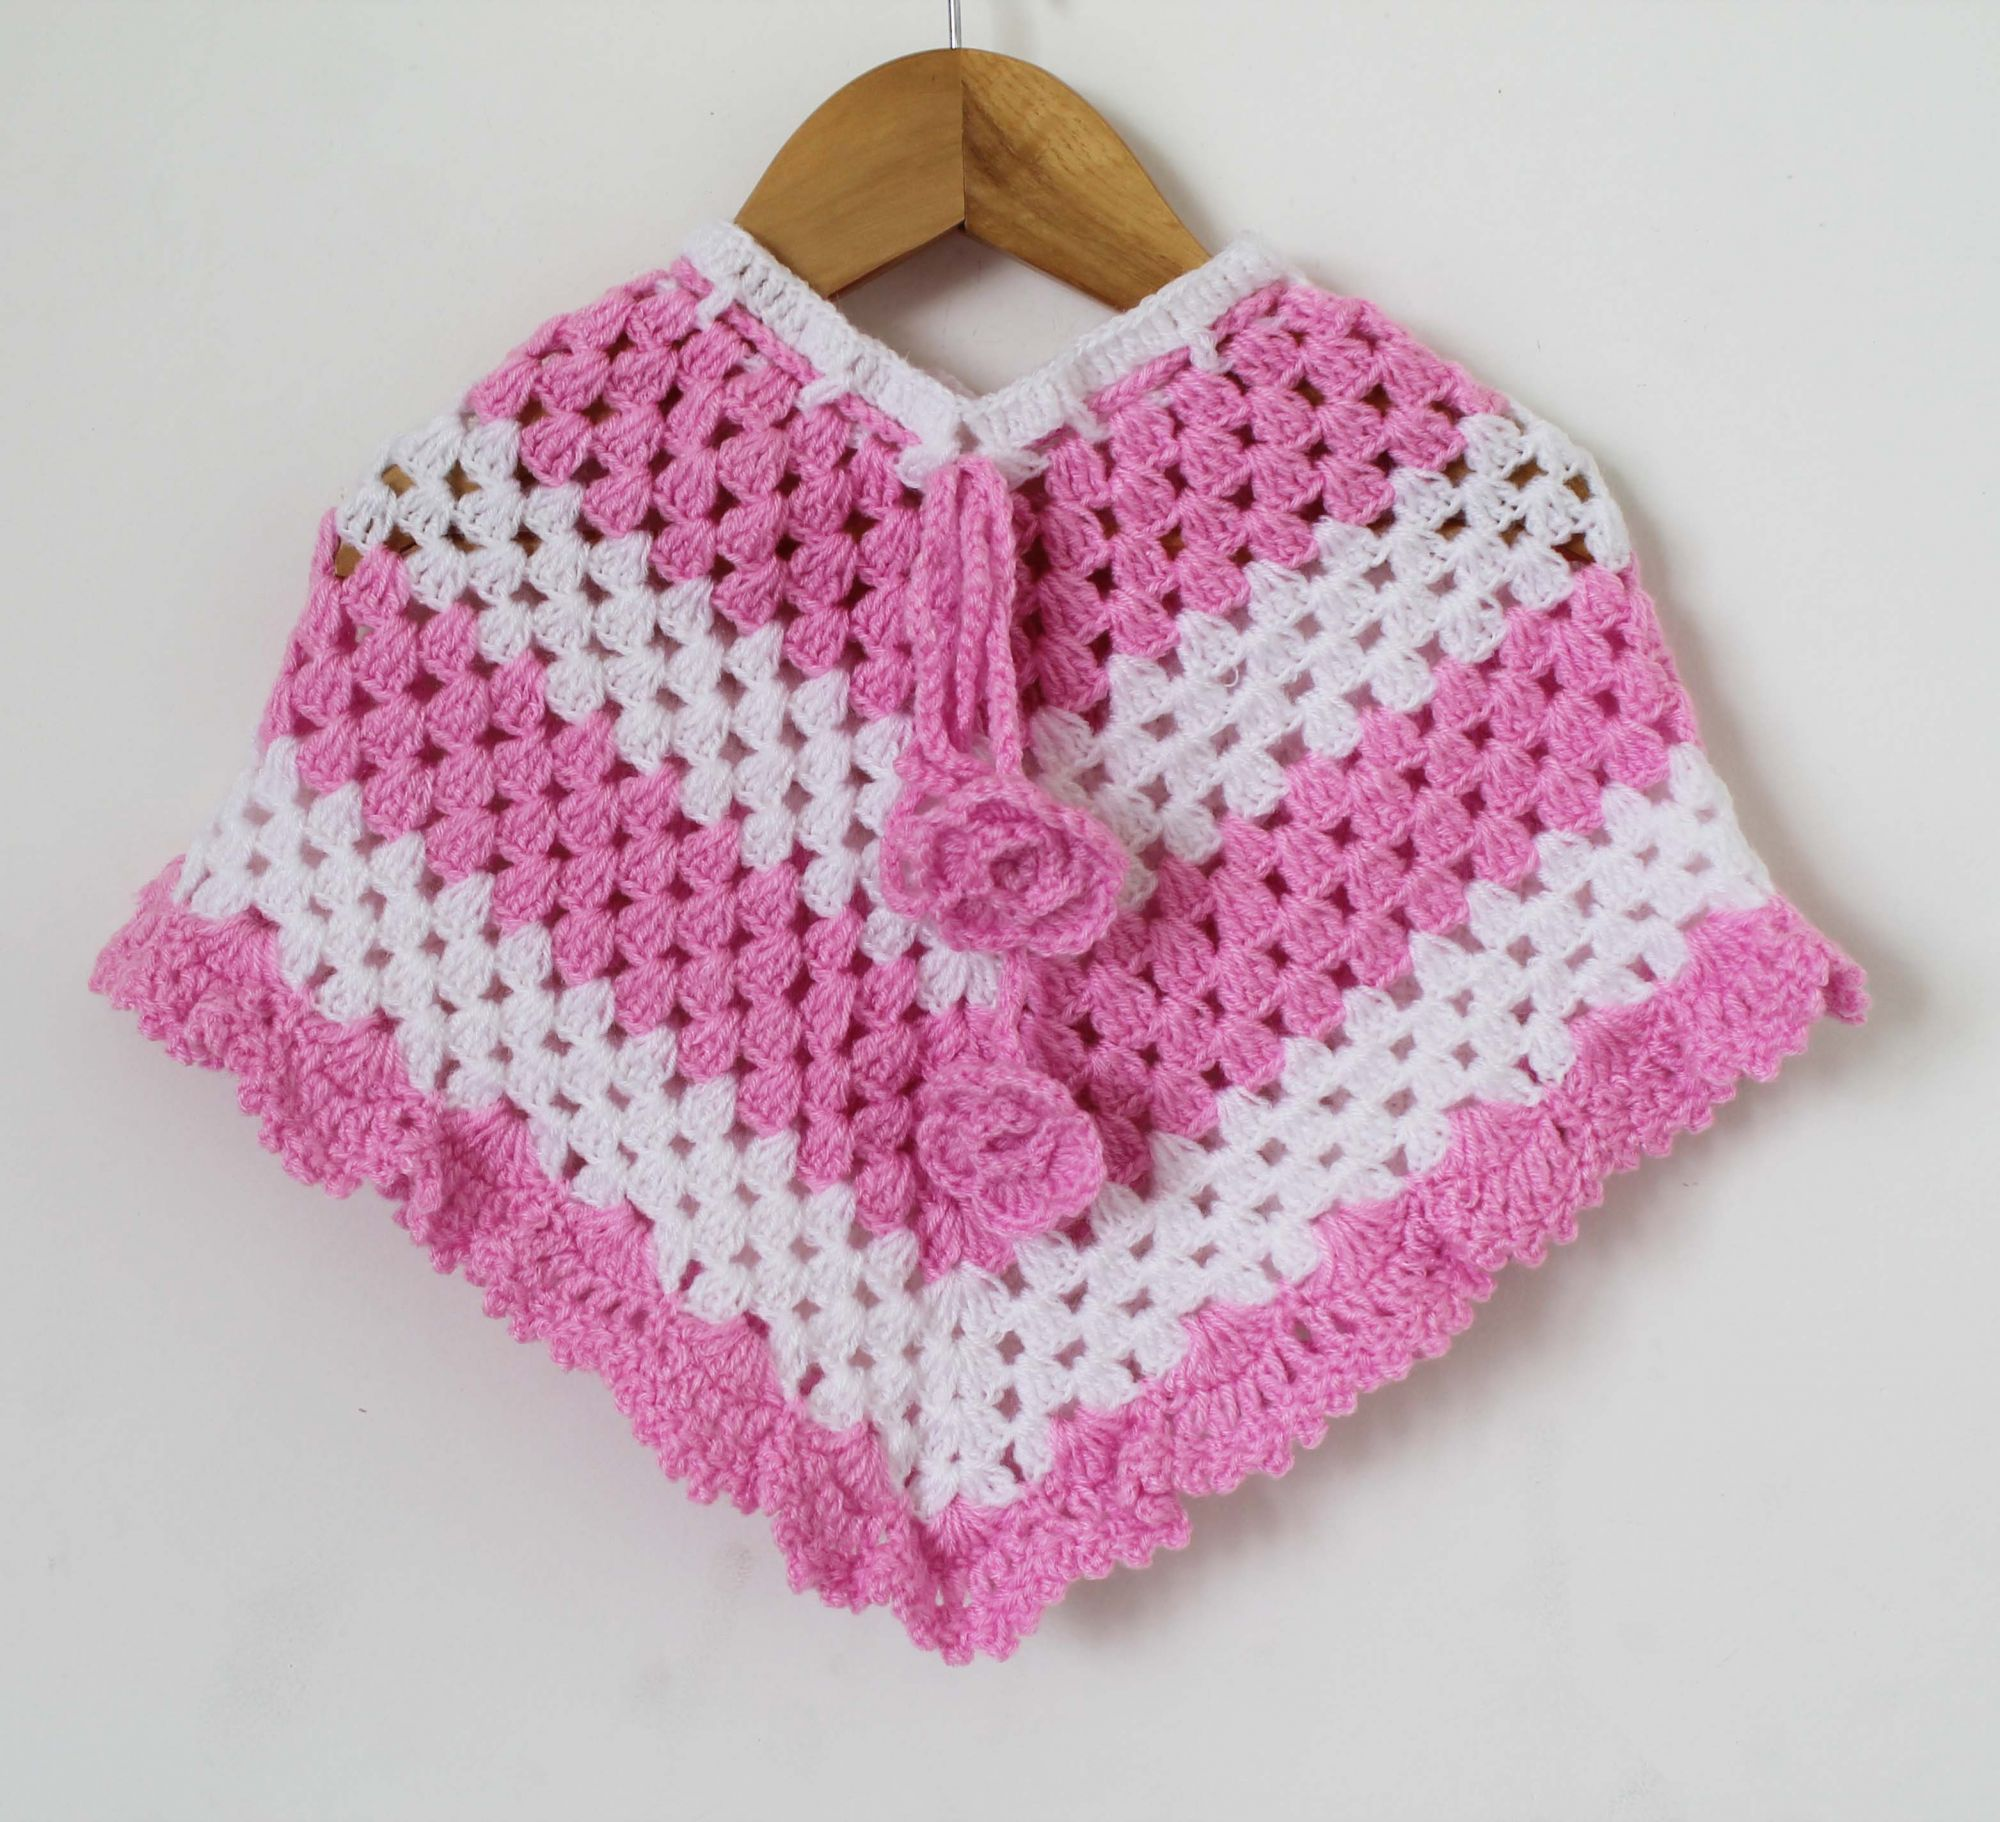 Woonie Handmade Pink and White Poncho for Infants